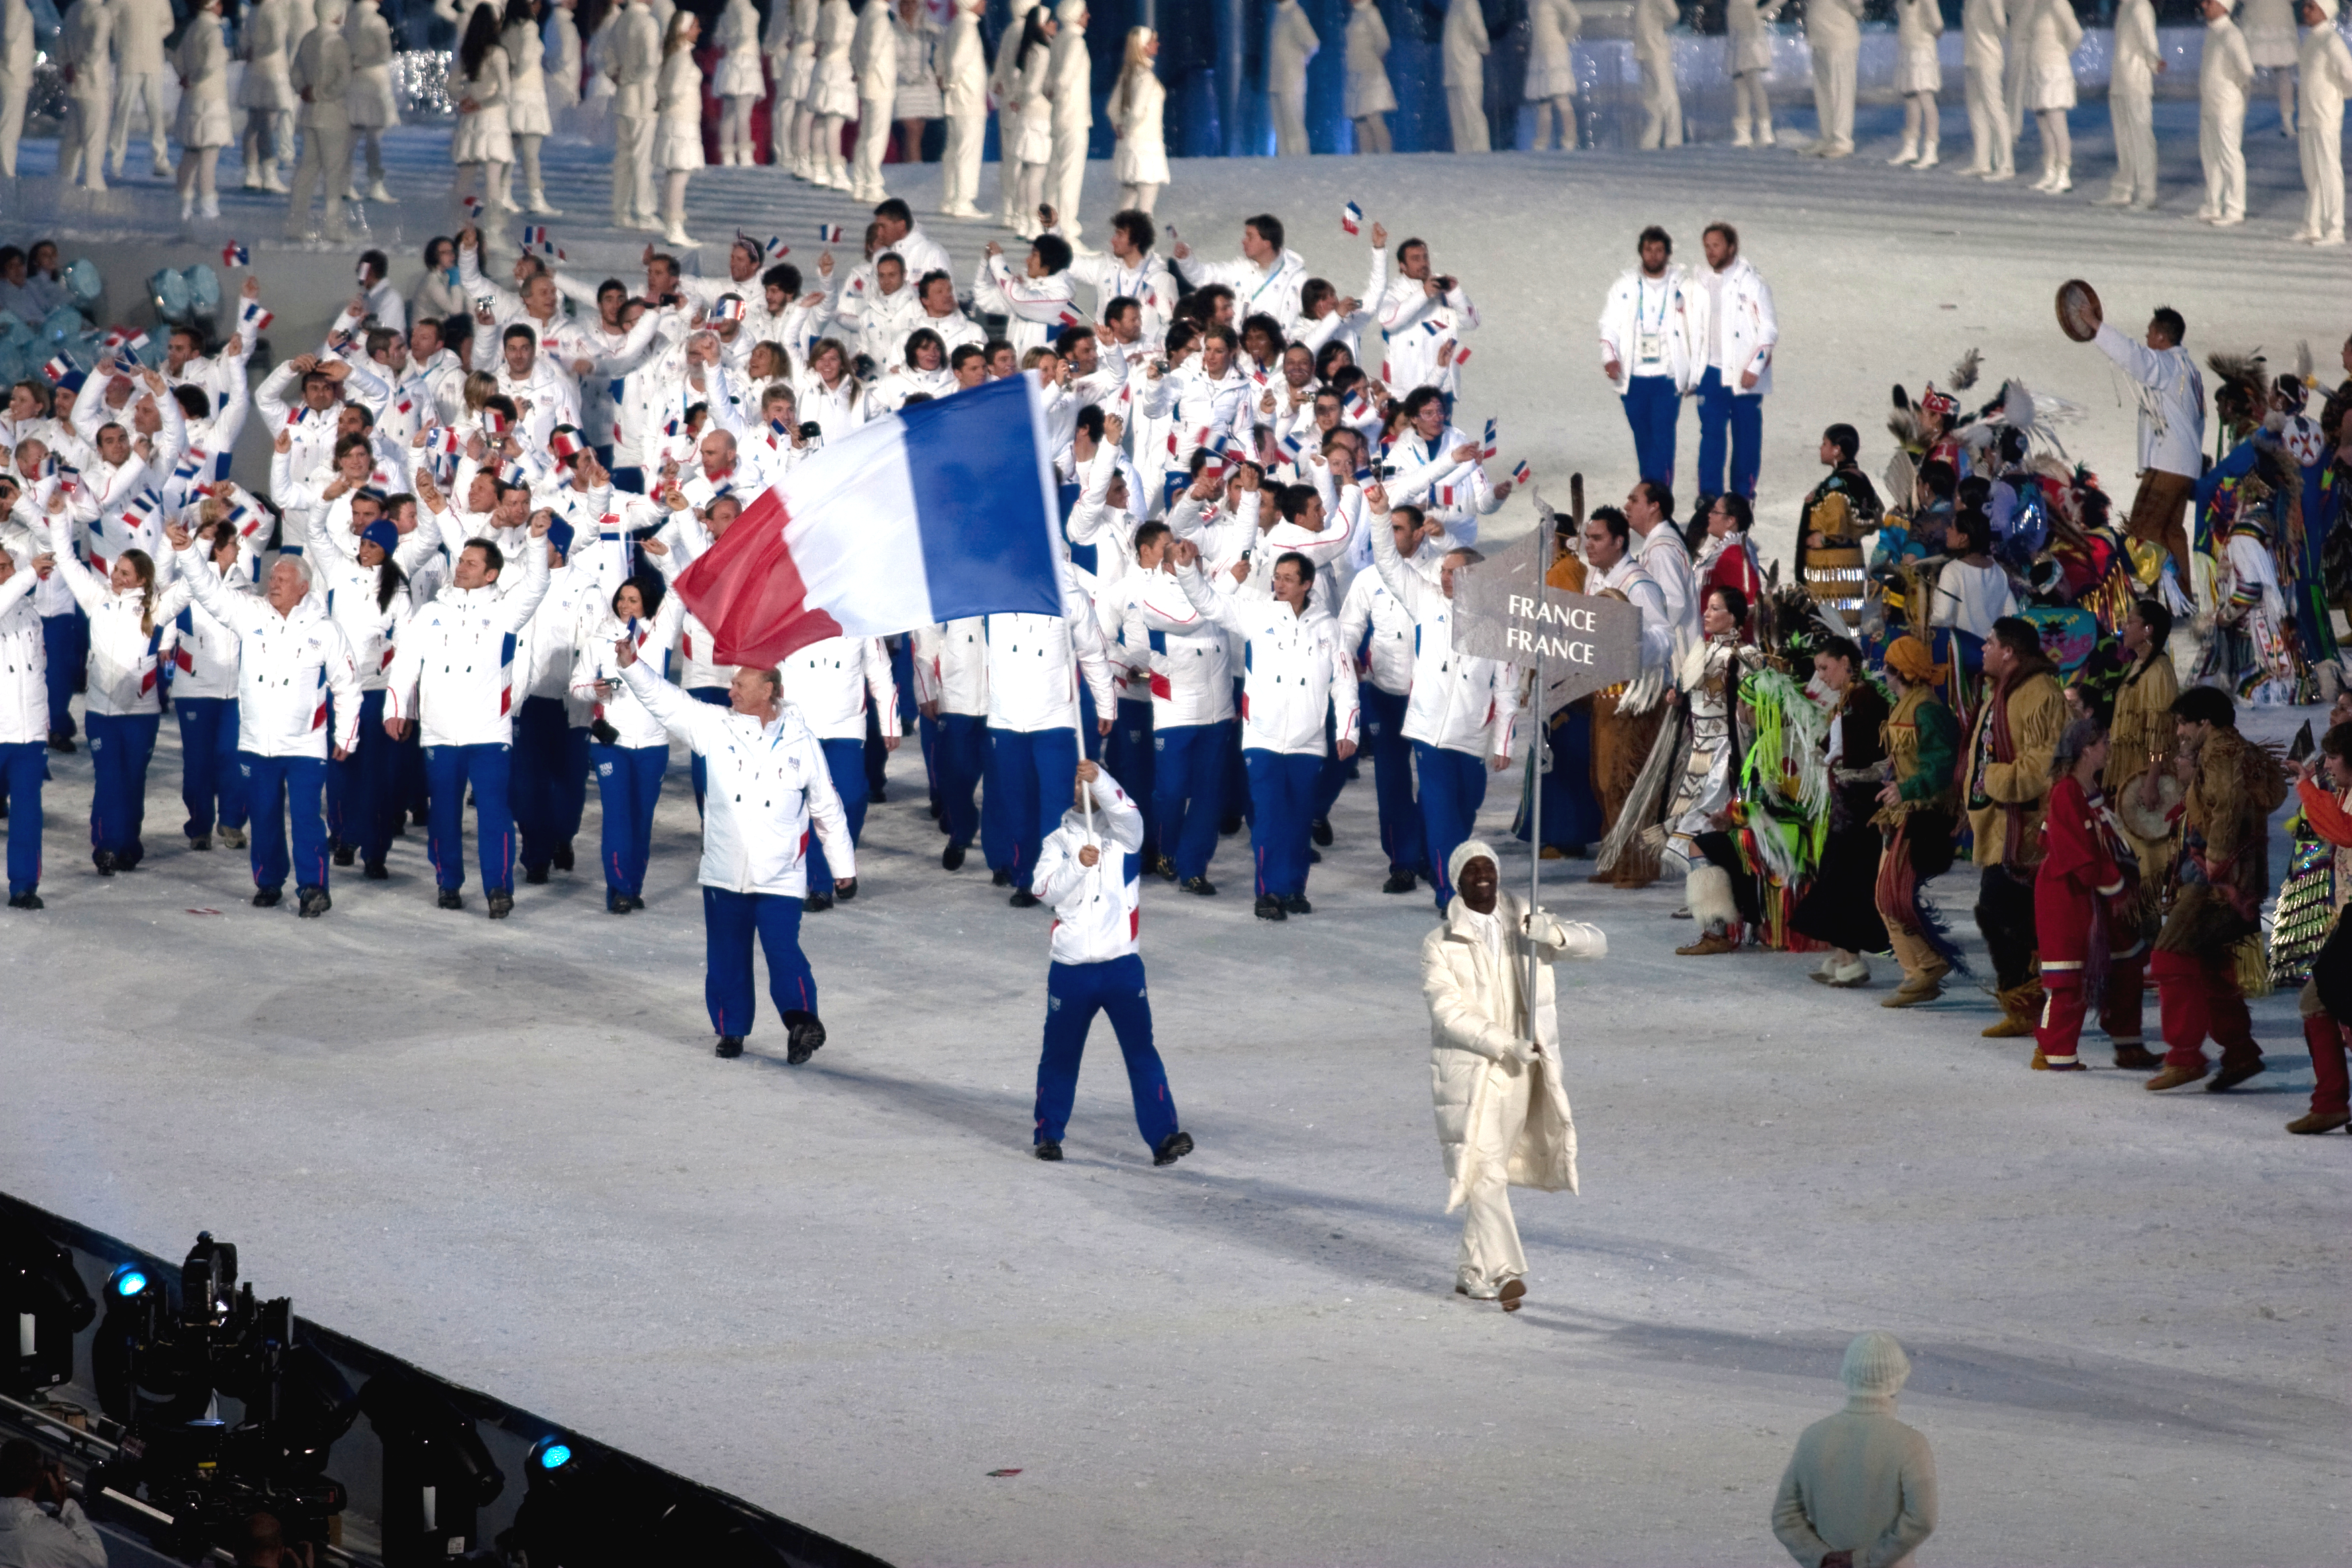 File:2010 Opening Ceremony - France entering.jpg - Wikimedia Commons